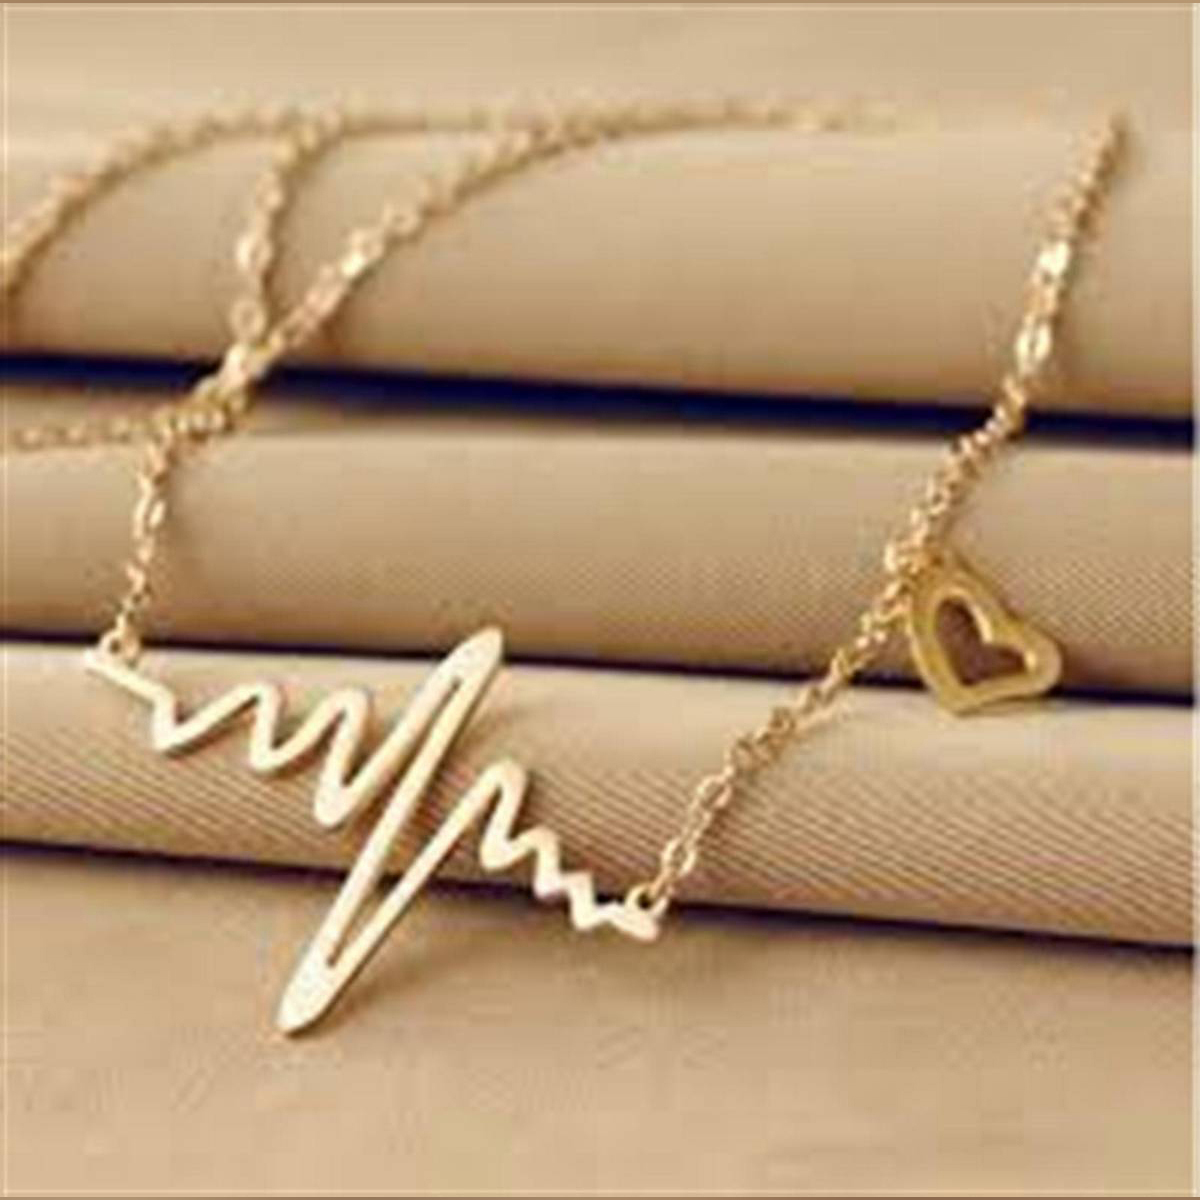 Fashion Jewelry For Women ECG Heart Necklace Clavicle Choker Pendant Necklaces Heartbeat